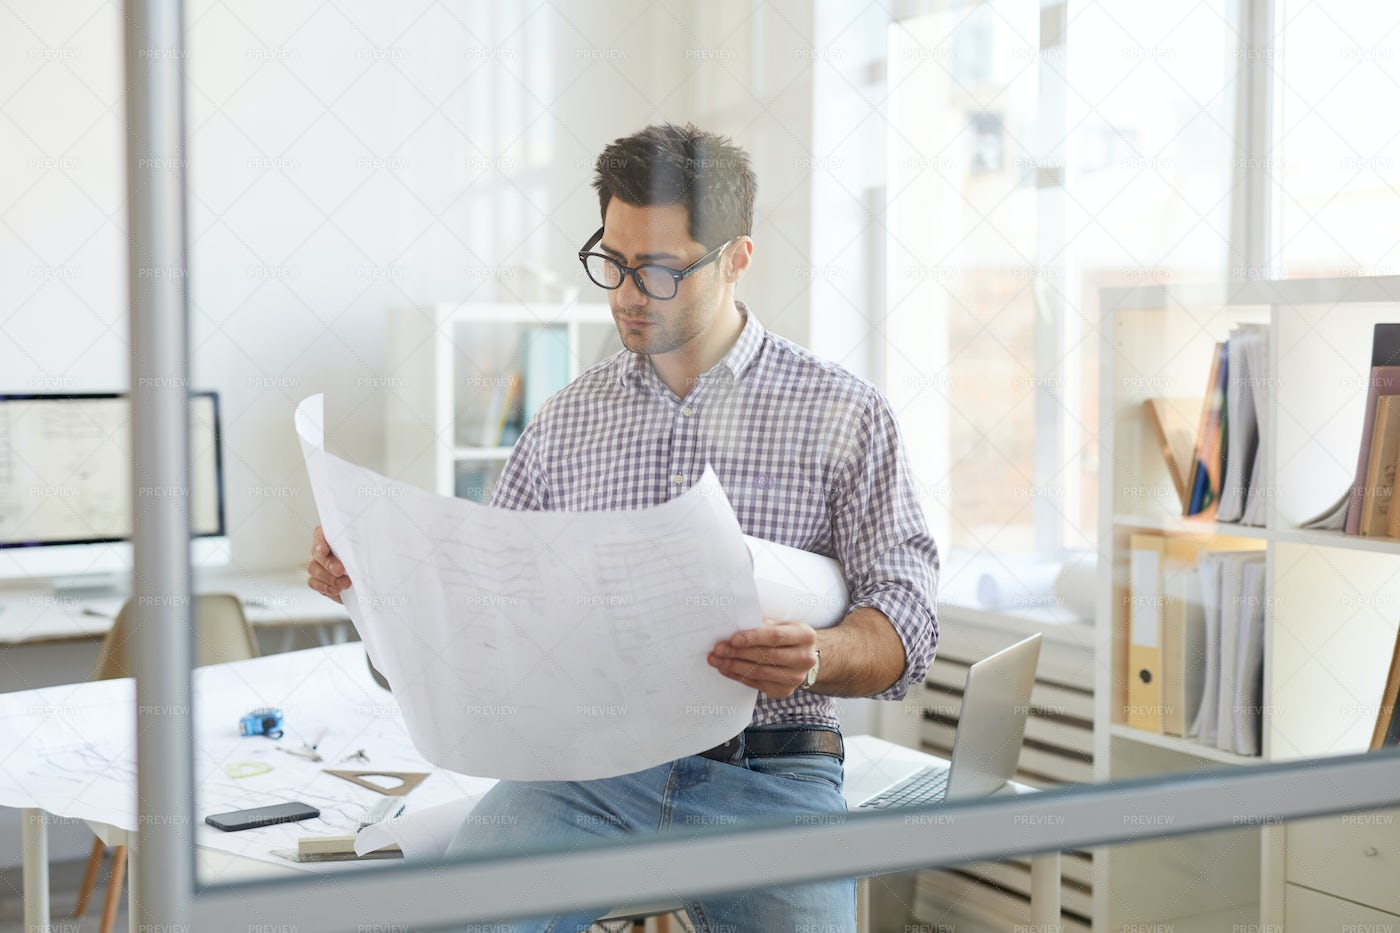 Engineer At Workplace Behind Glass: Stock Photos